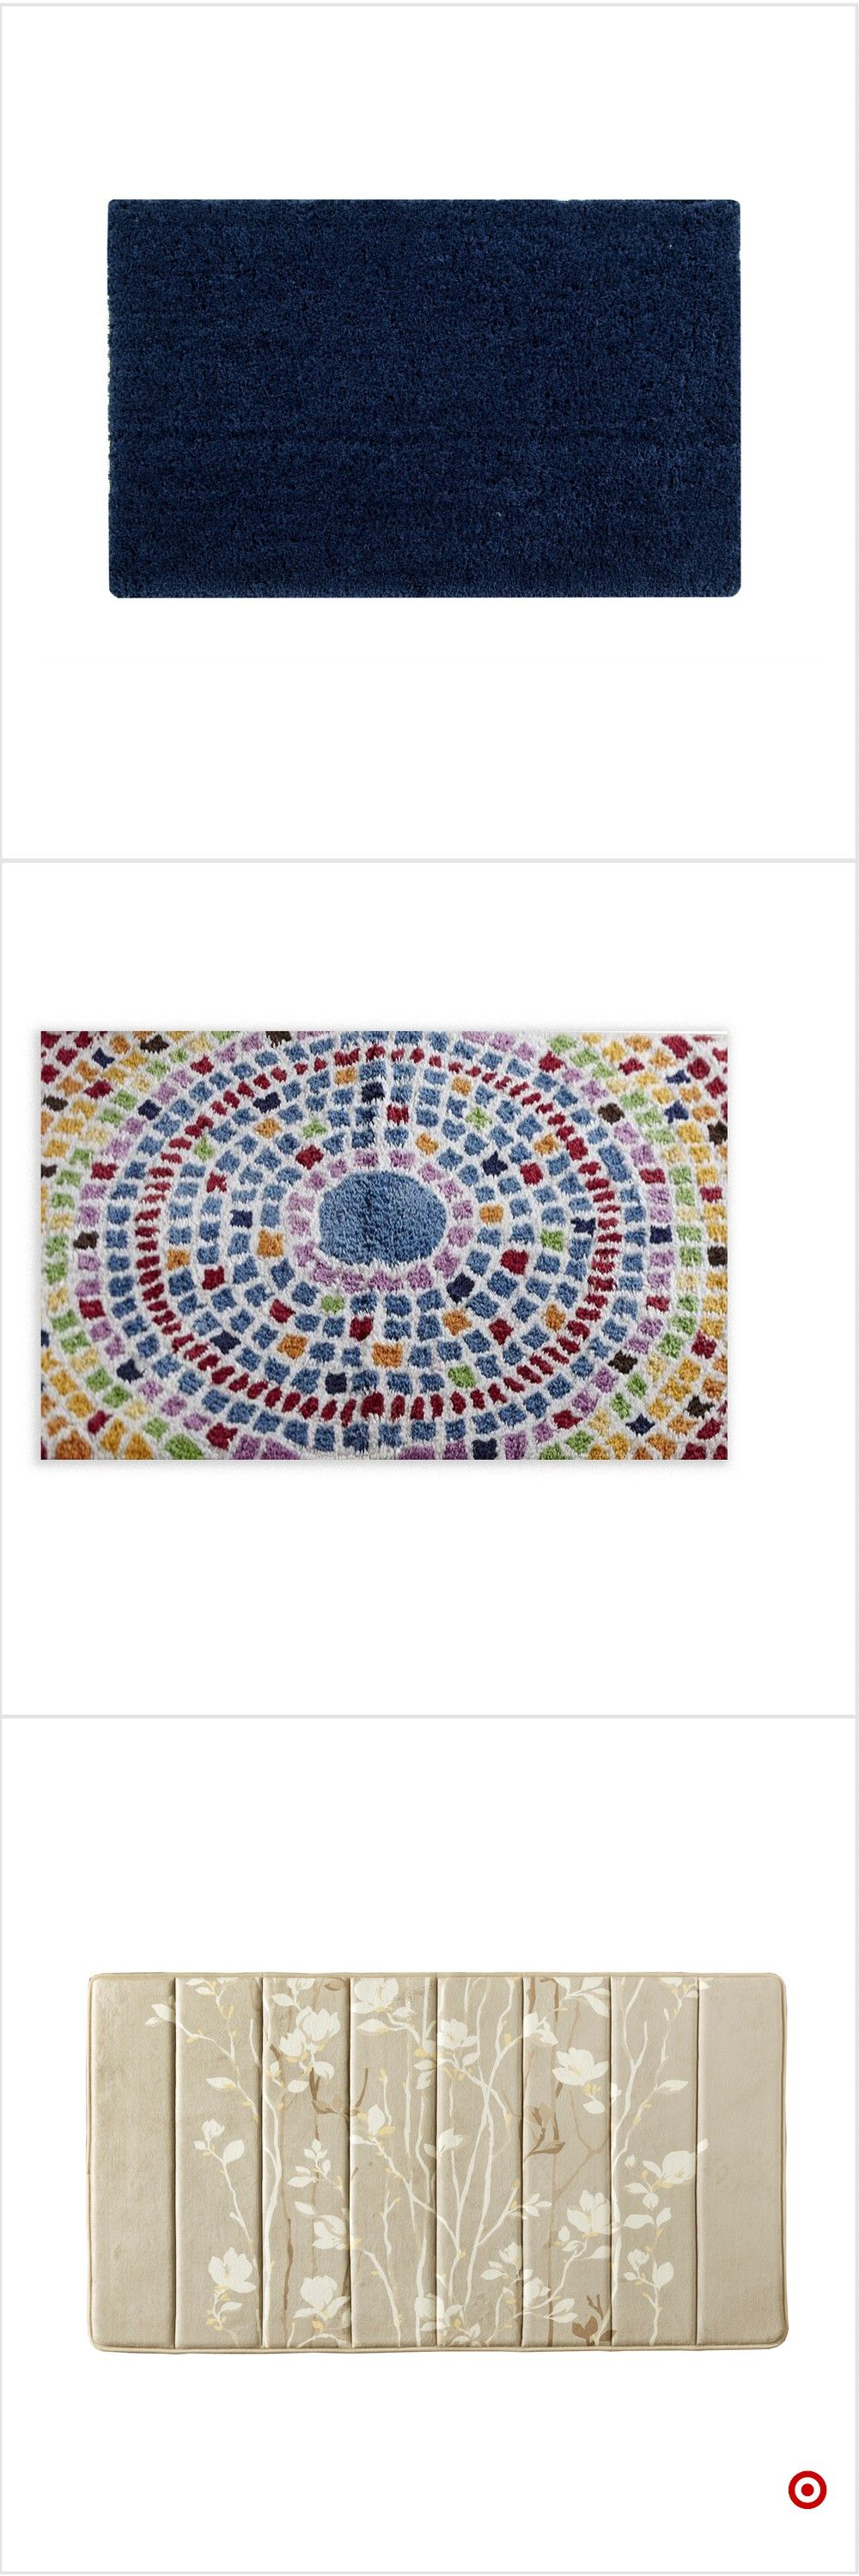 Shop Target For Bath Rug You Will Love At Great Low Prices